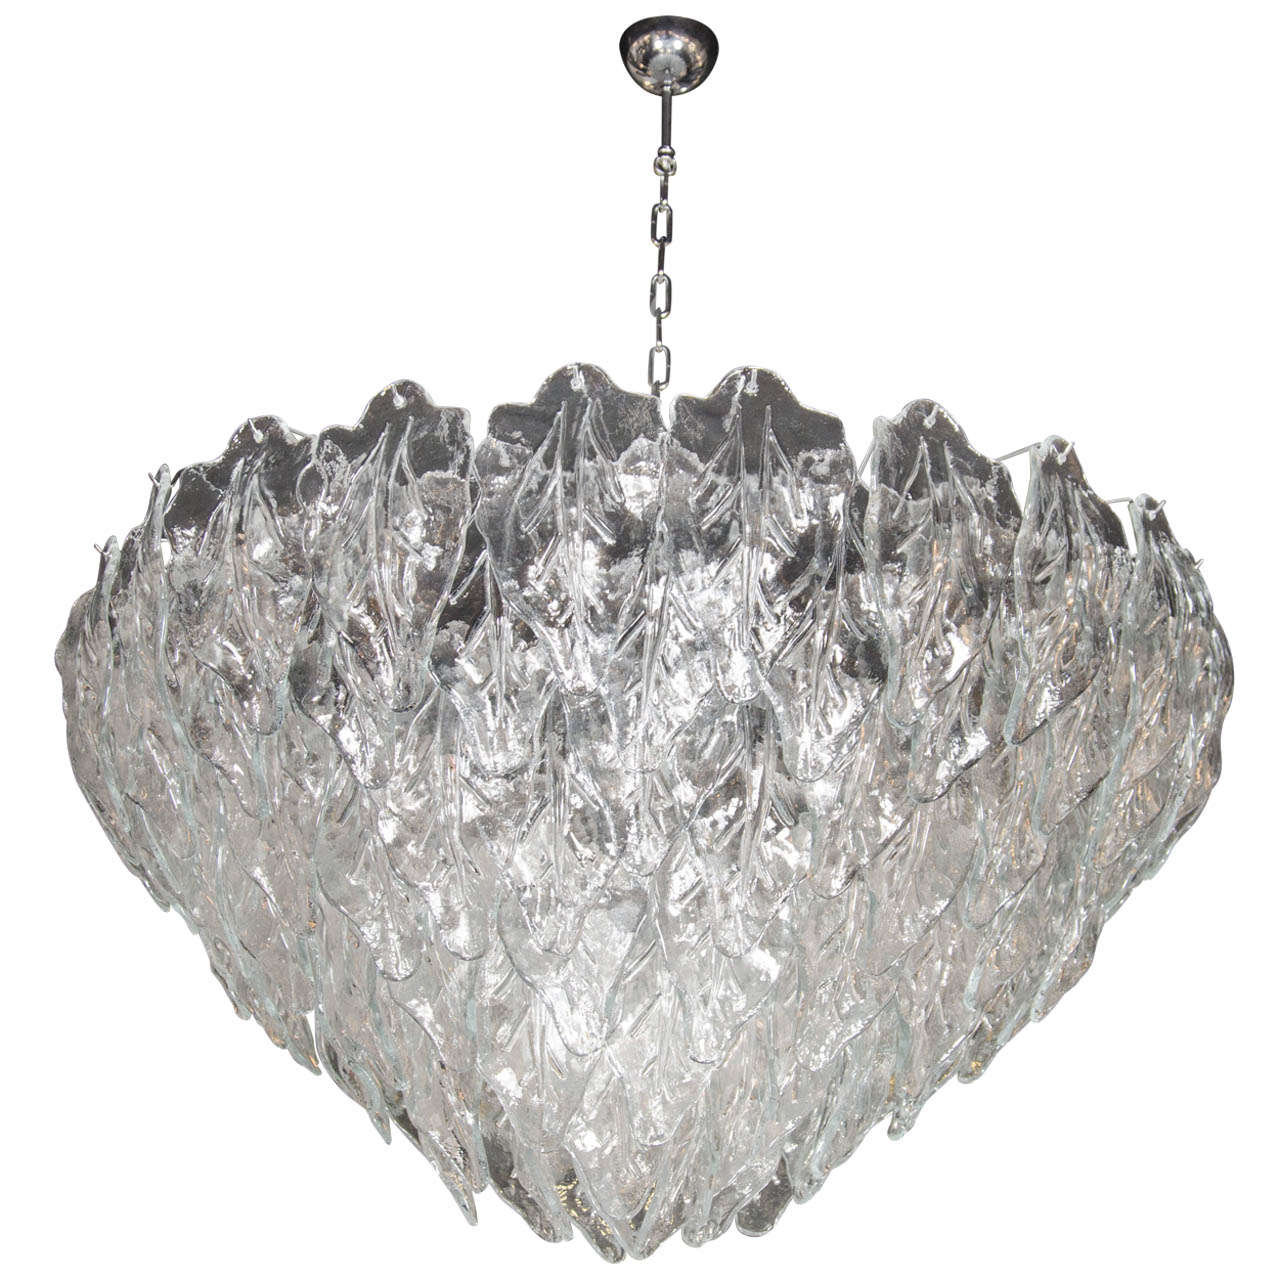 Opulent Murano Hand Blown Glass Leaf Chandelier At 1stdibs